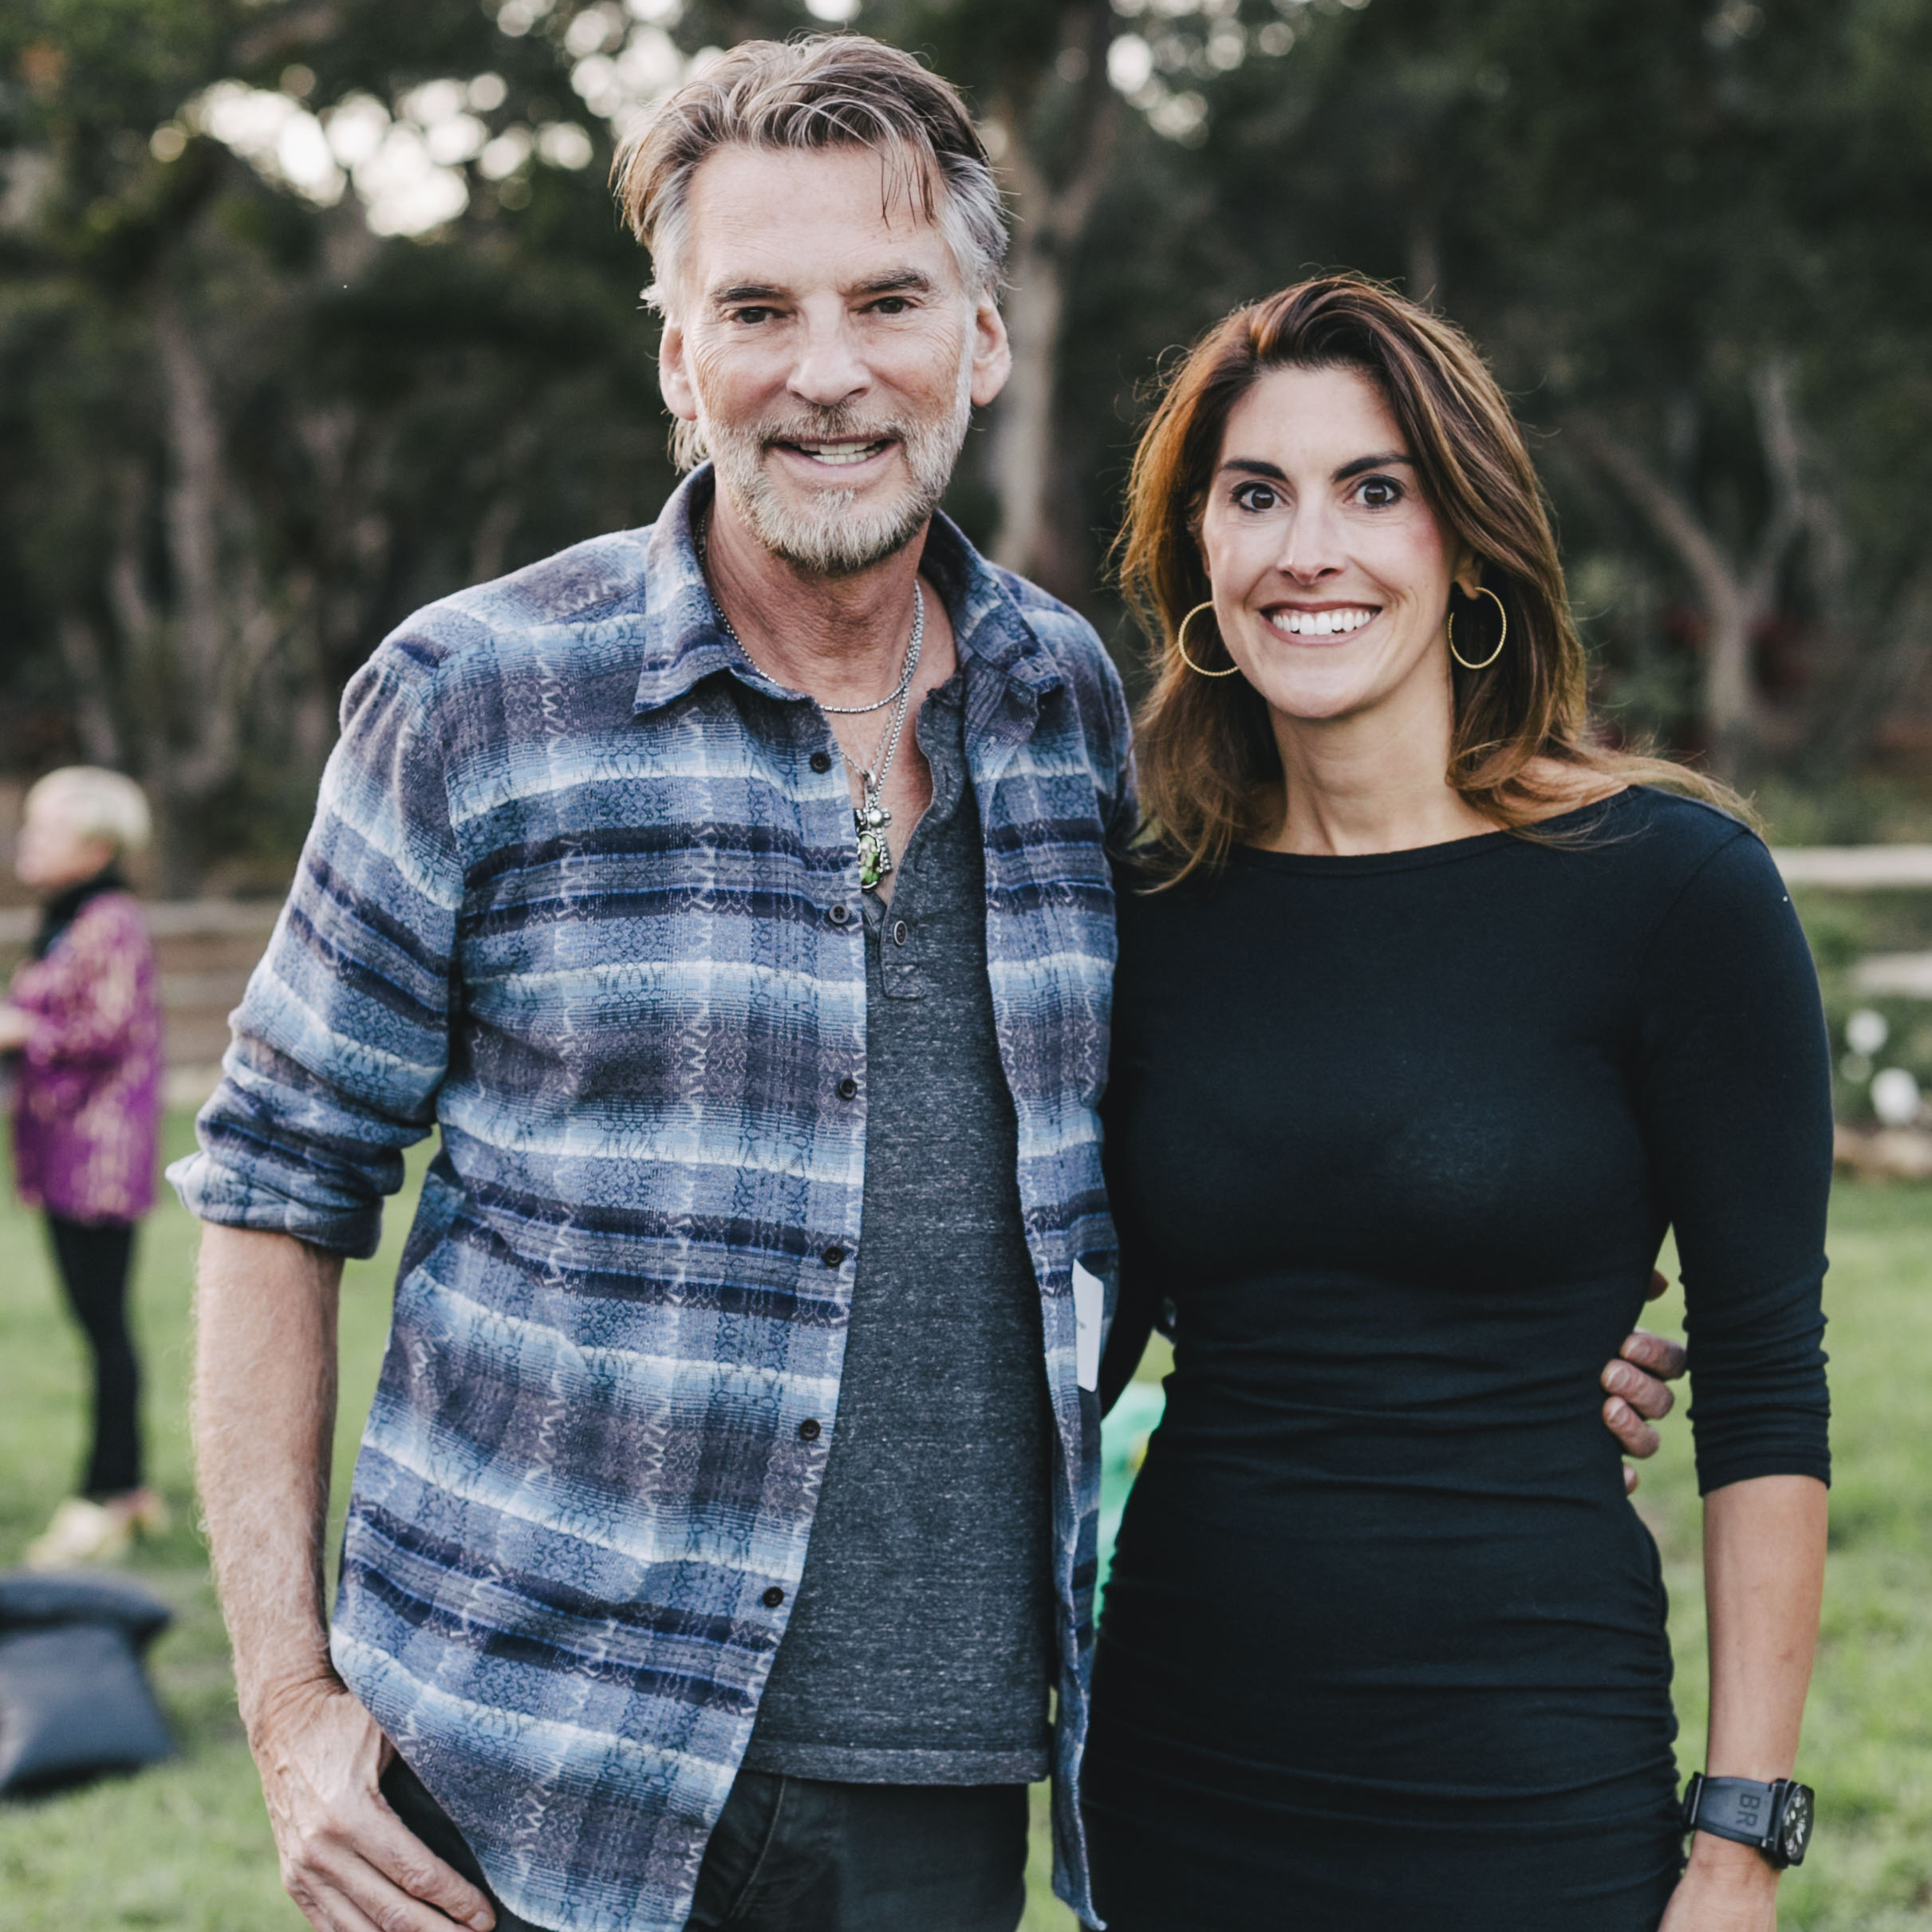 Shelterbox interview with singer & songwriter Kenny Loggins